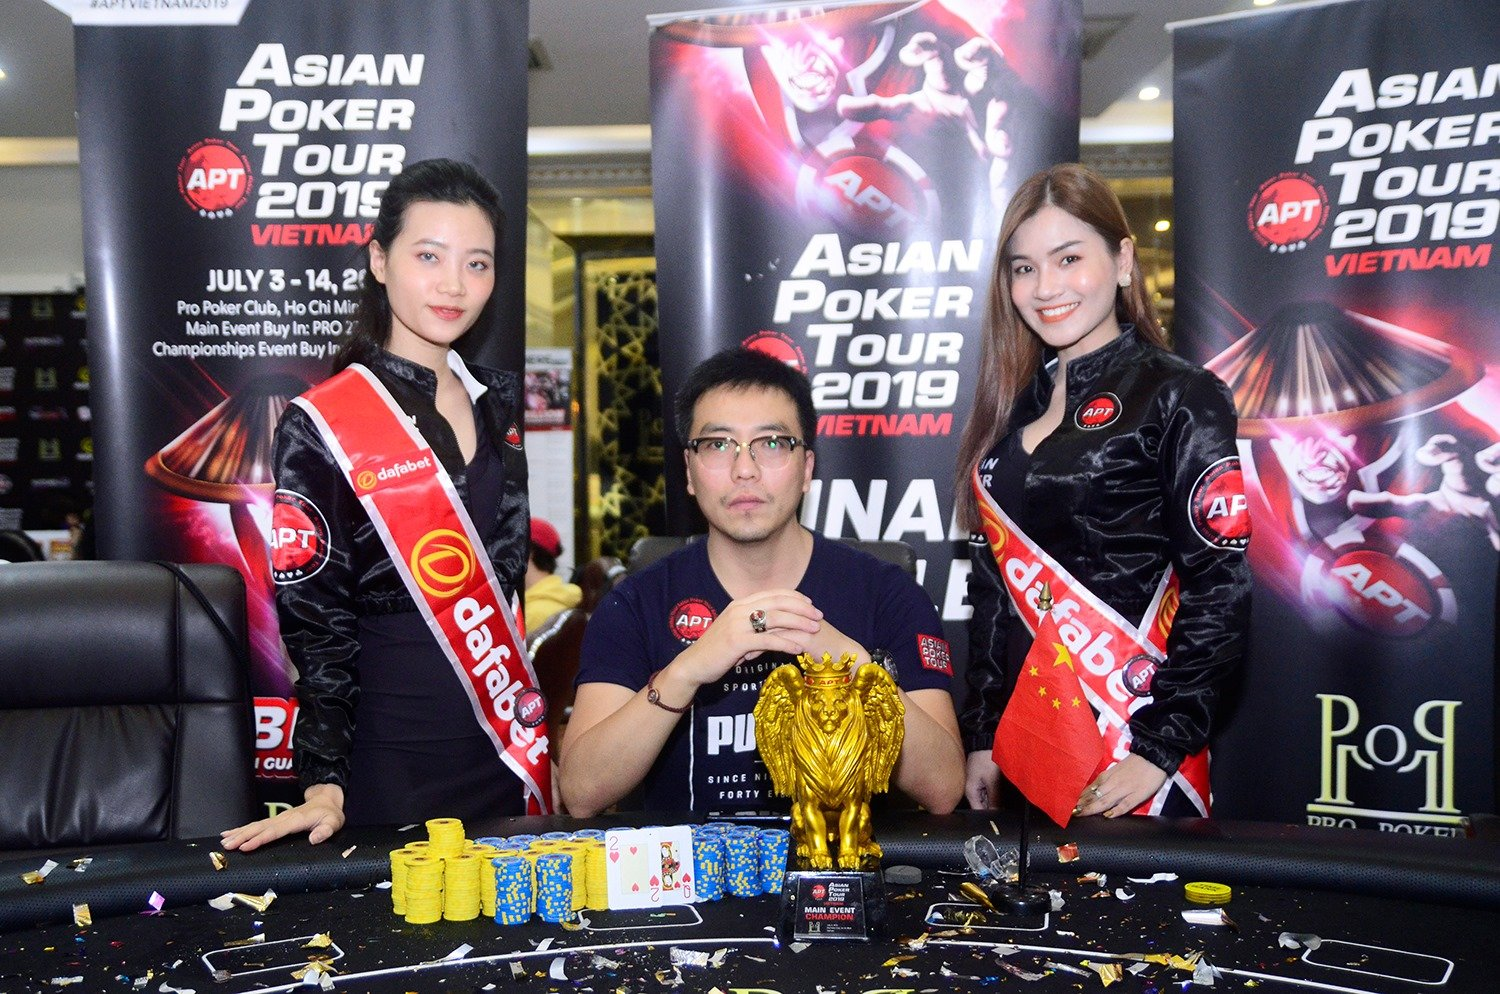 APT Vietnam 2019: Zhou Jiaping ships the Main Event; Eunho Kwon & Junwoo Oh among early winners